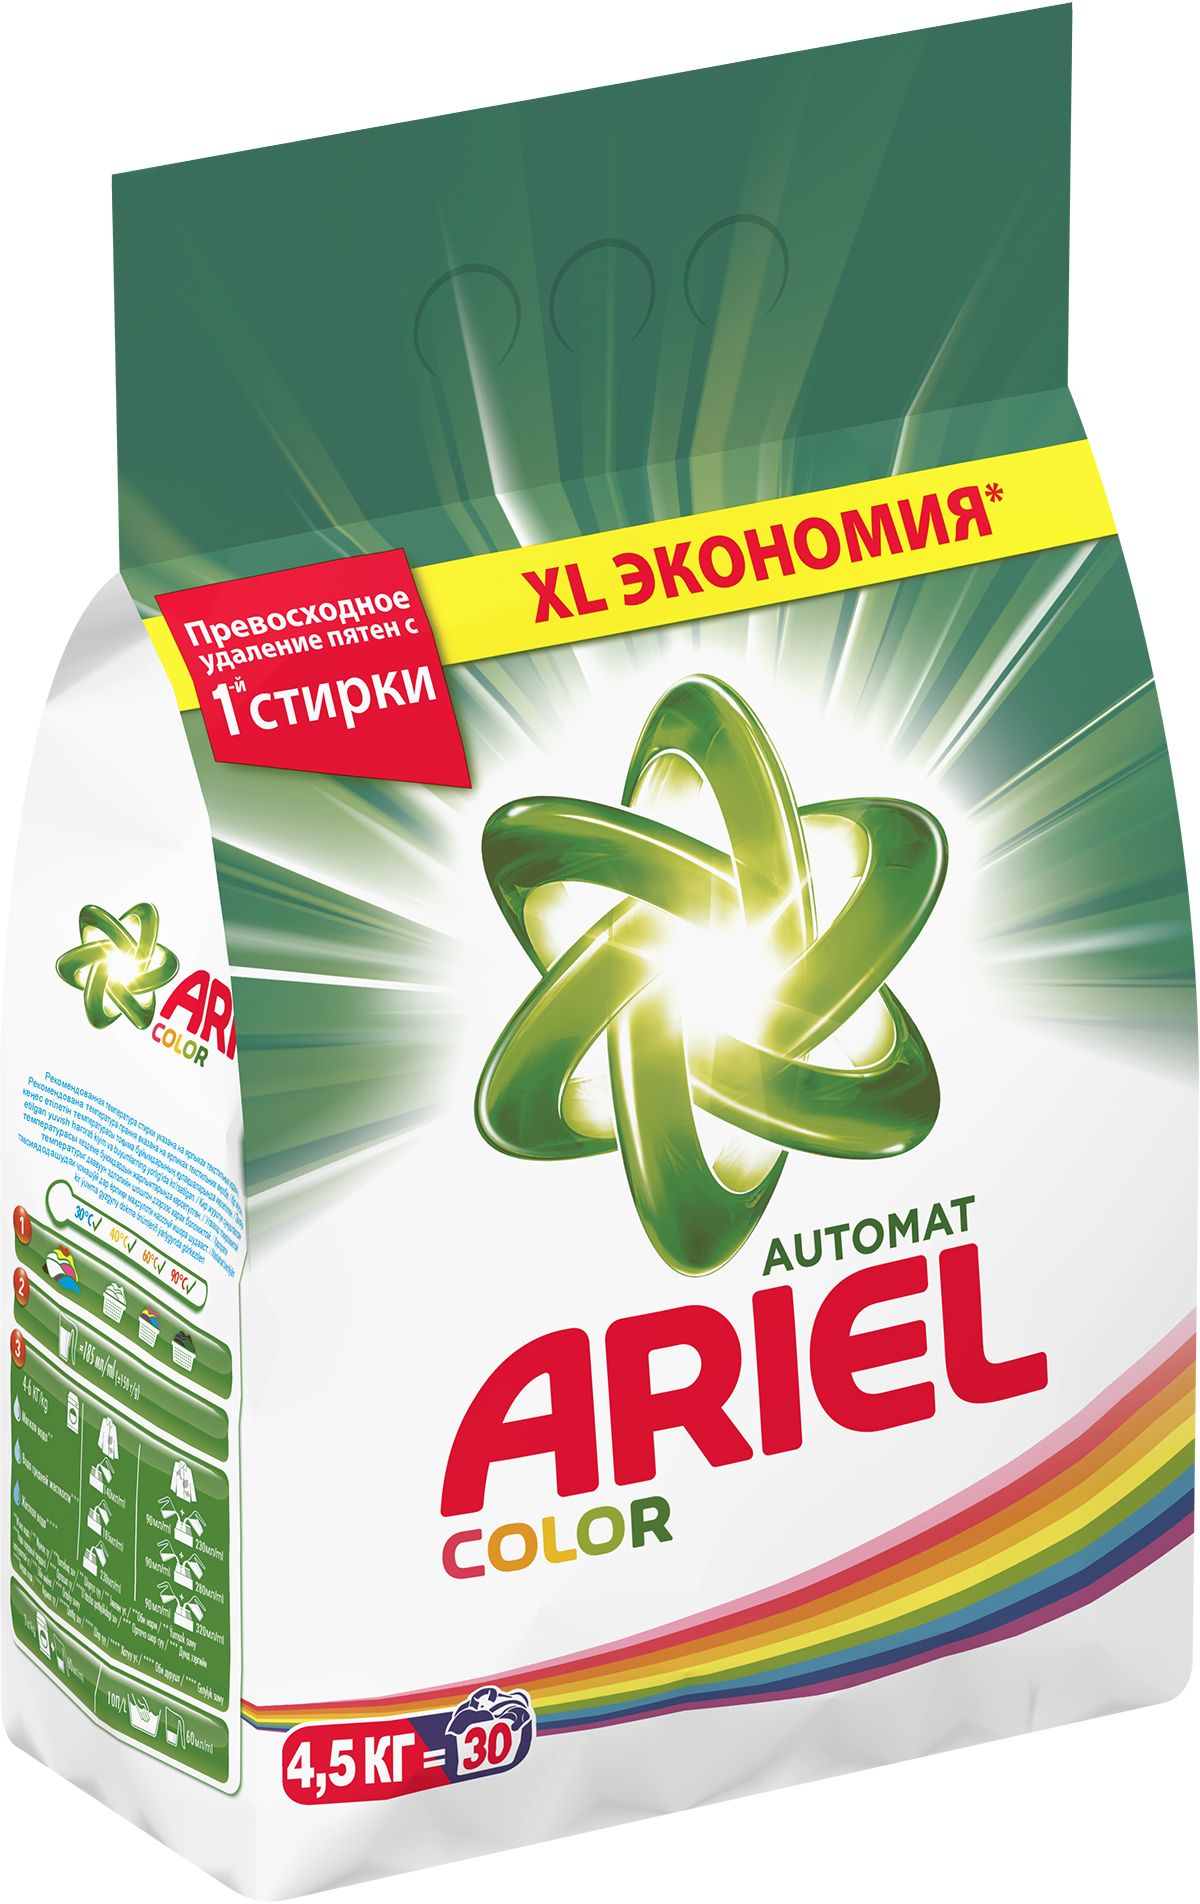 ariel ARIEL Color & Style 4,5 кг Автомат (5413149193956)